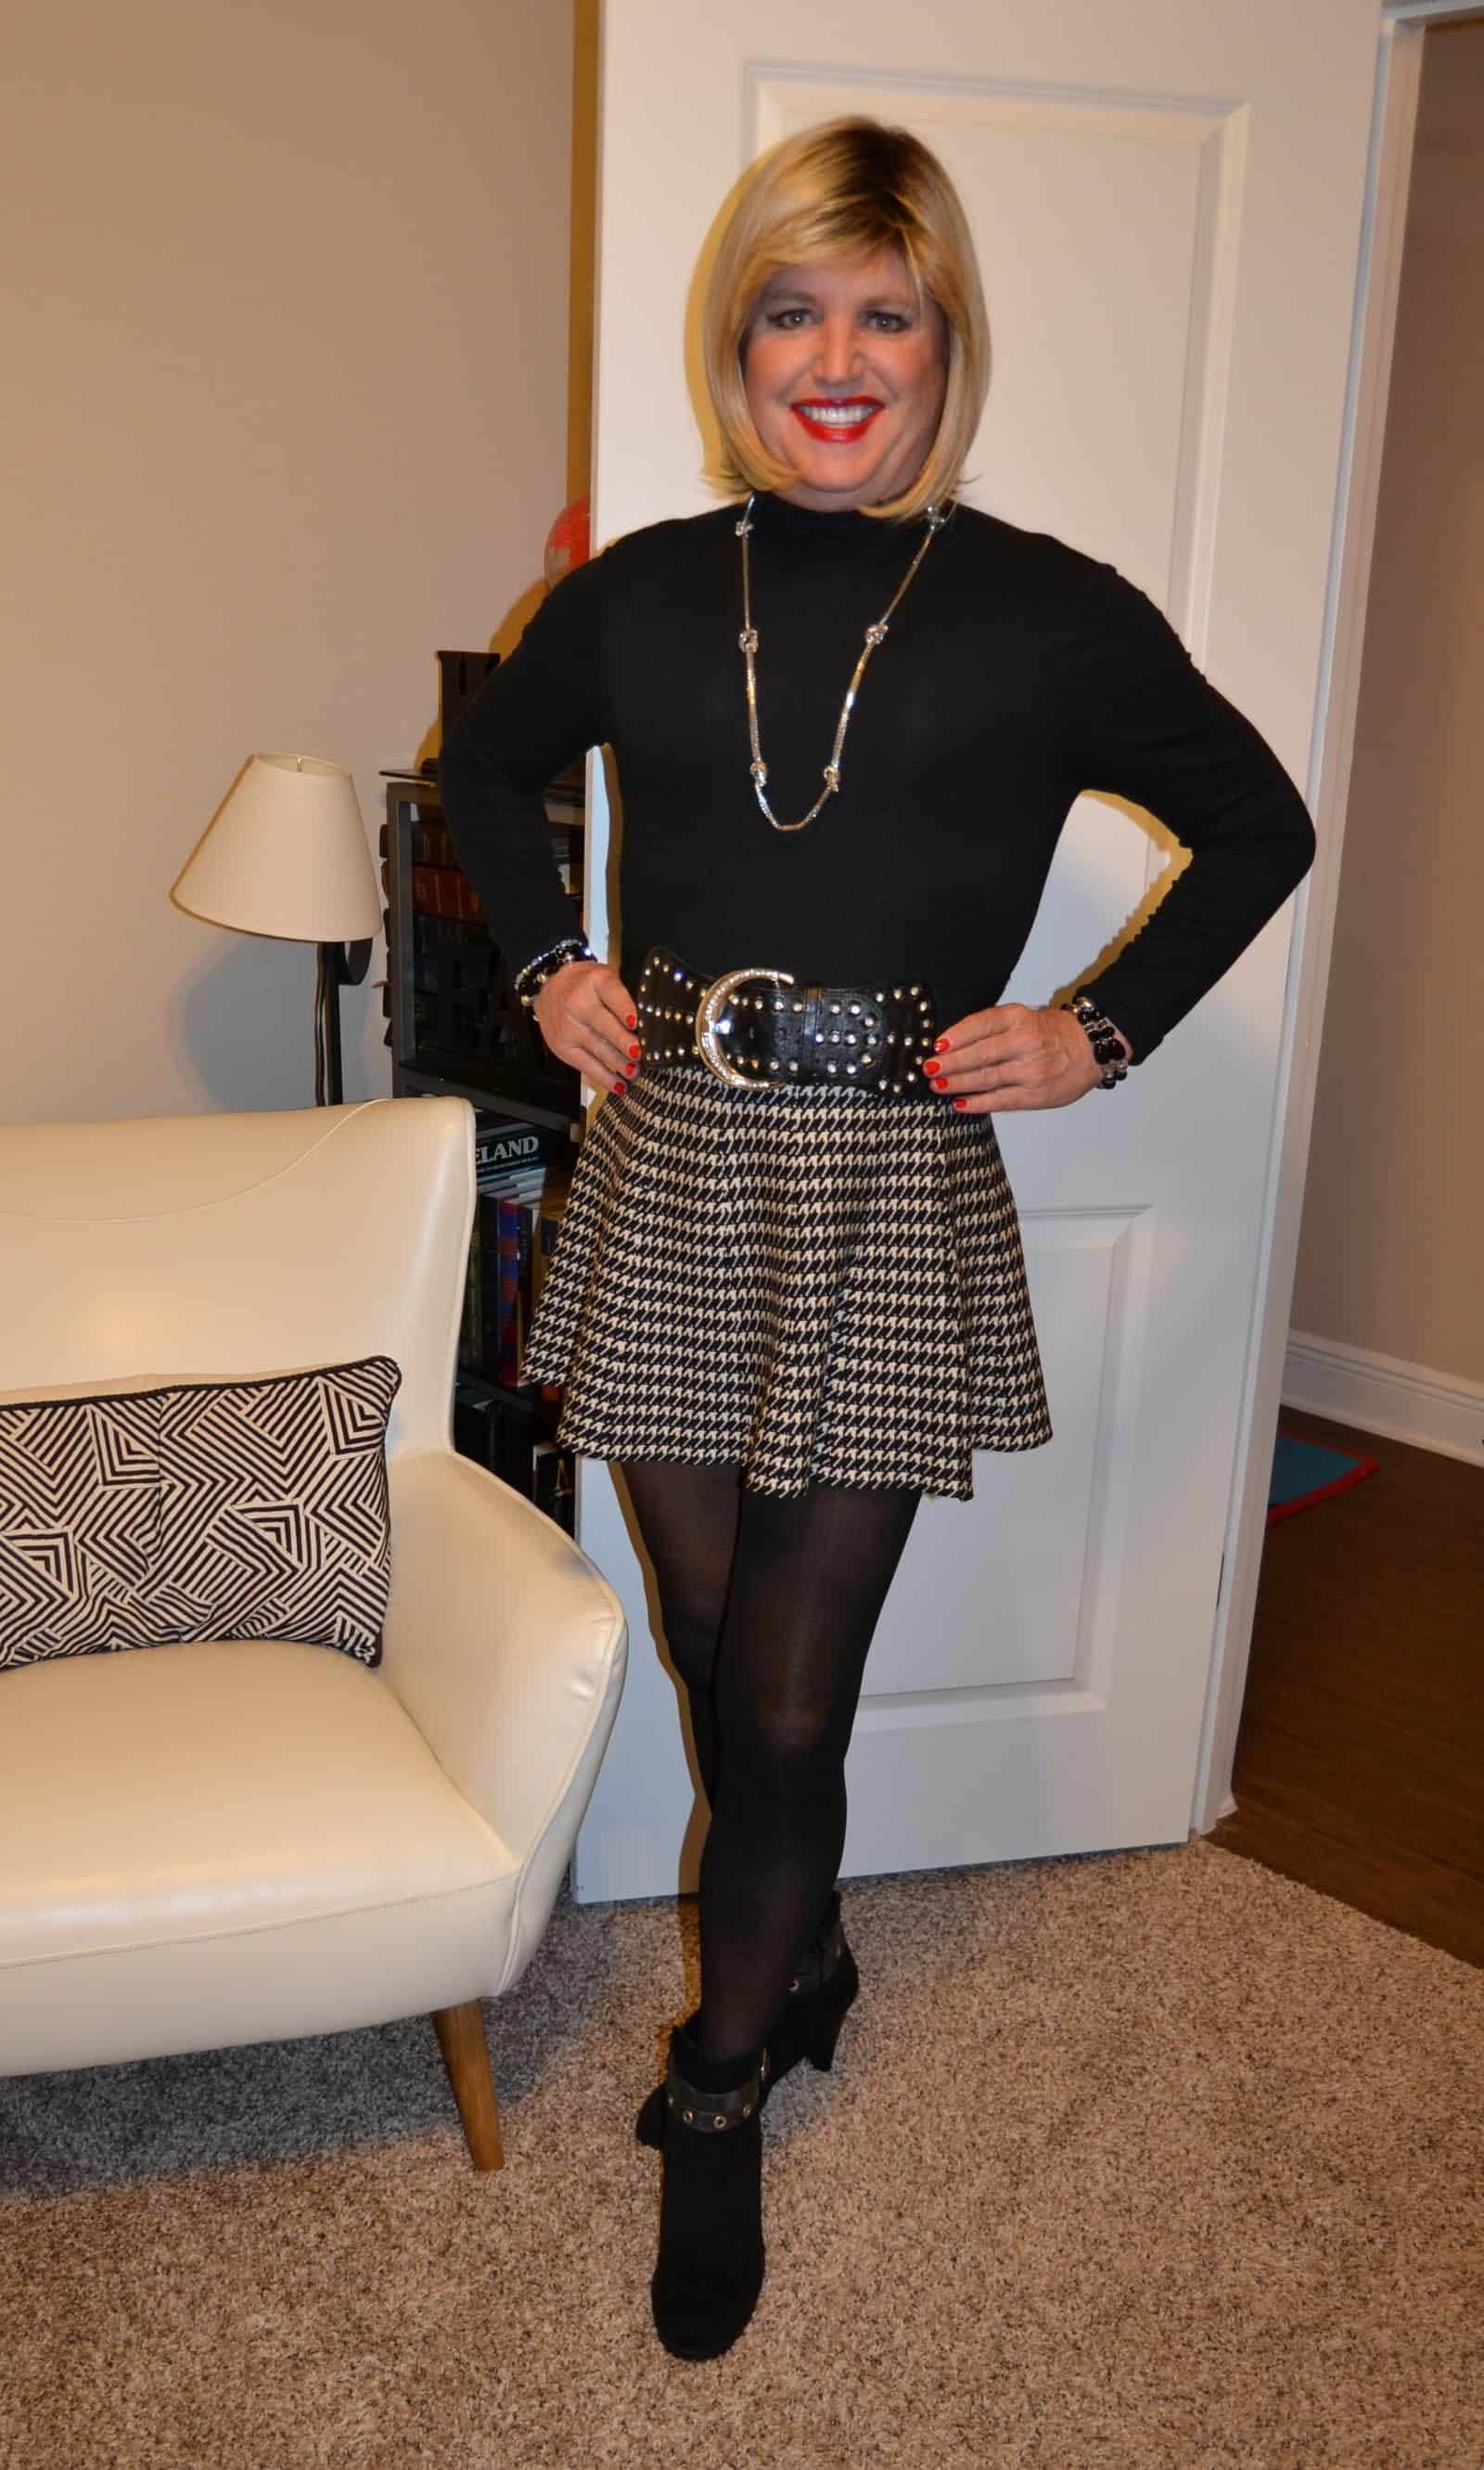 Wool Skater Skirts Are My Thing!